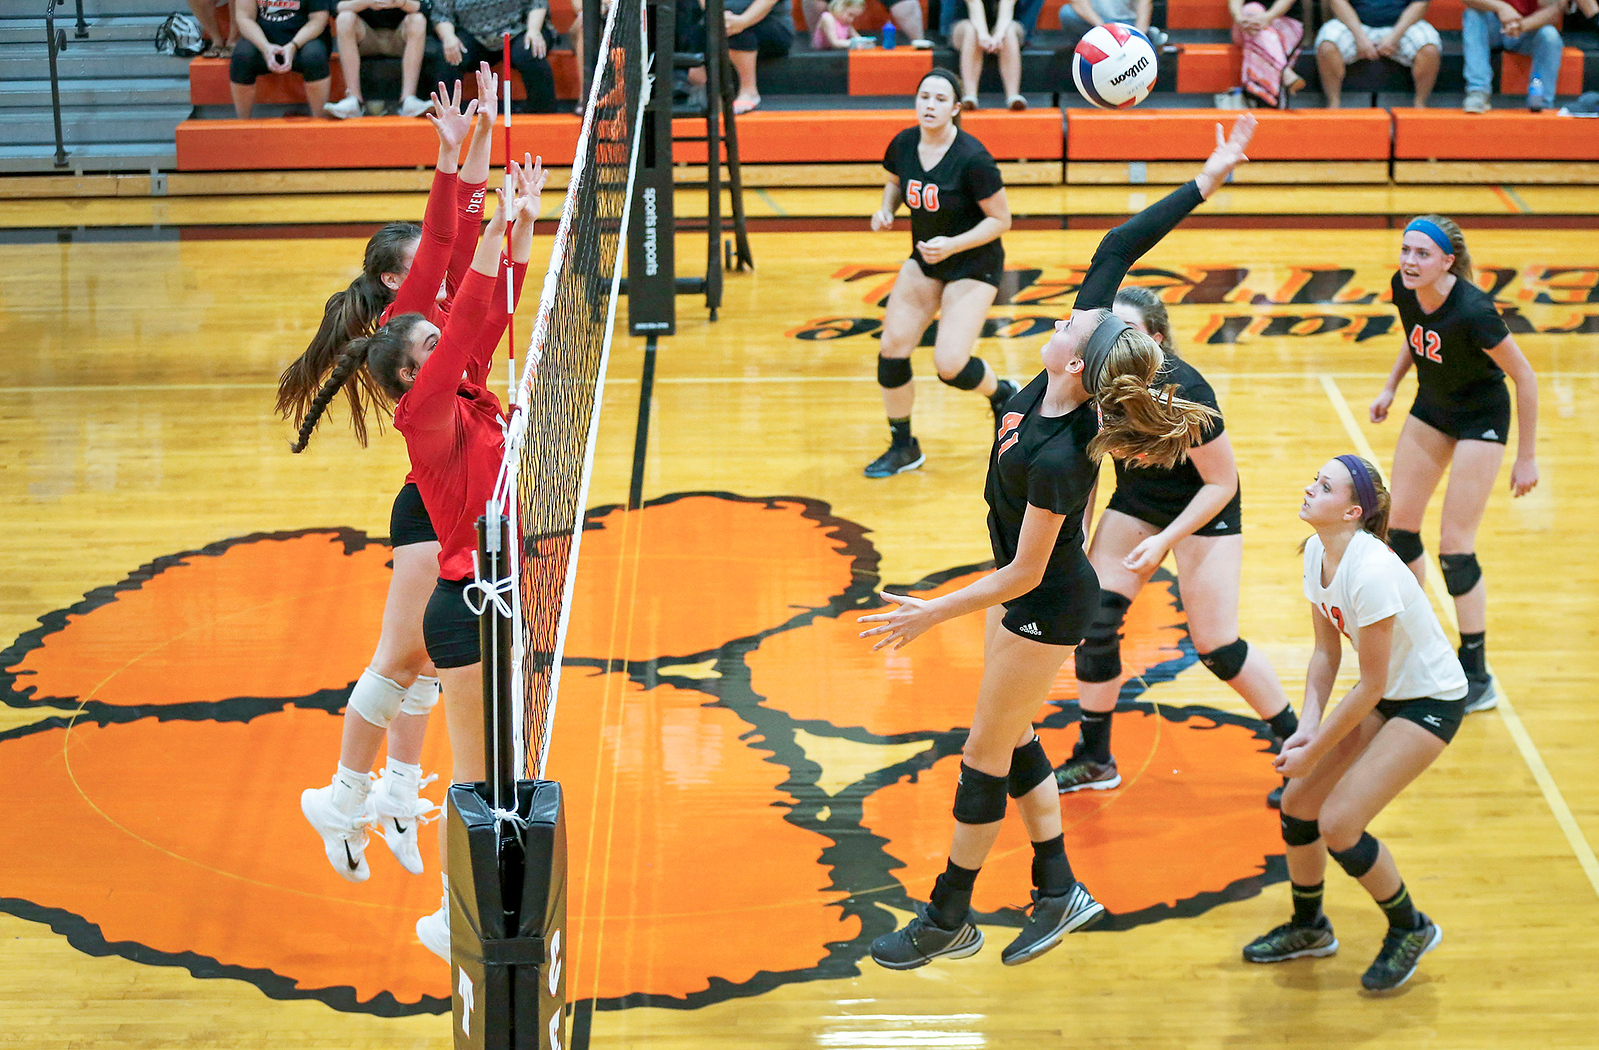 Emily Kelly (41) from Crystal Lake Central hits a ball at the net during their first game against Huntley at Crystal Lake Central High School on Thursday, September 21, 2017 in Crystal Lake, Illinois. The Tigers won the set in 2 games; 25-20, 25-23. John Konstantaras photo for Shaw Media